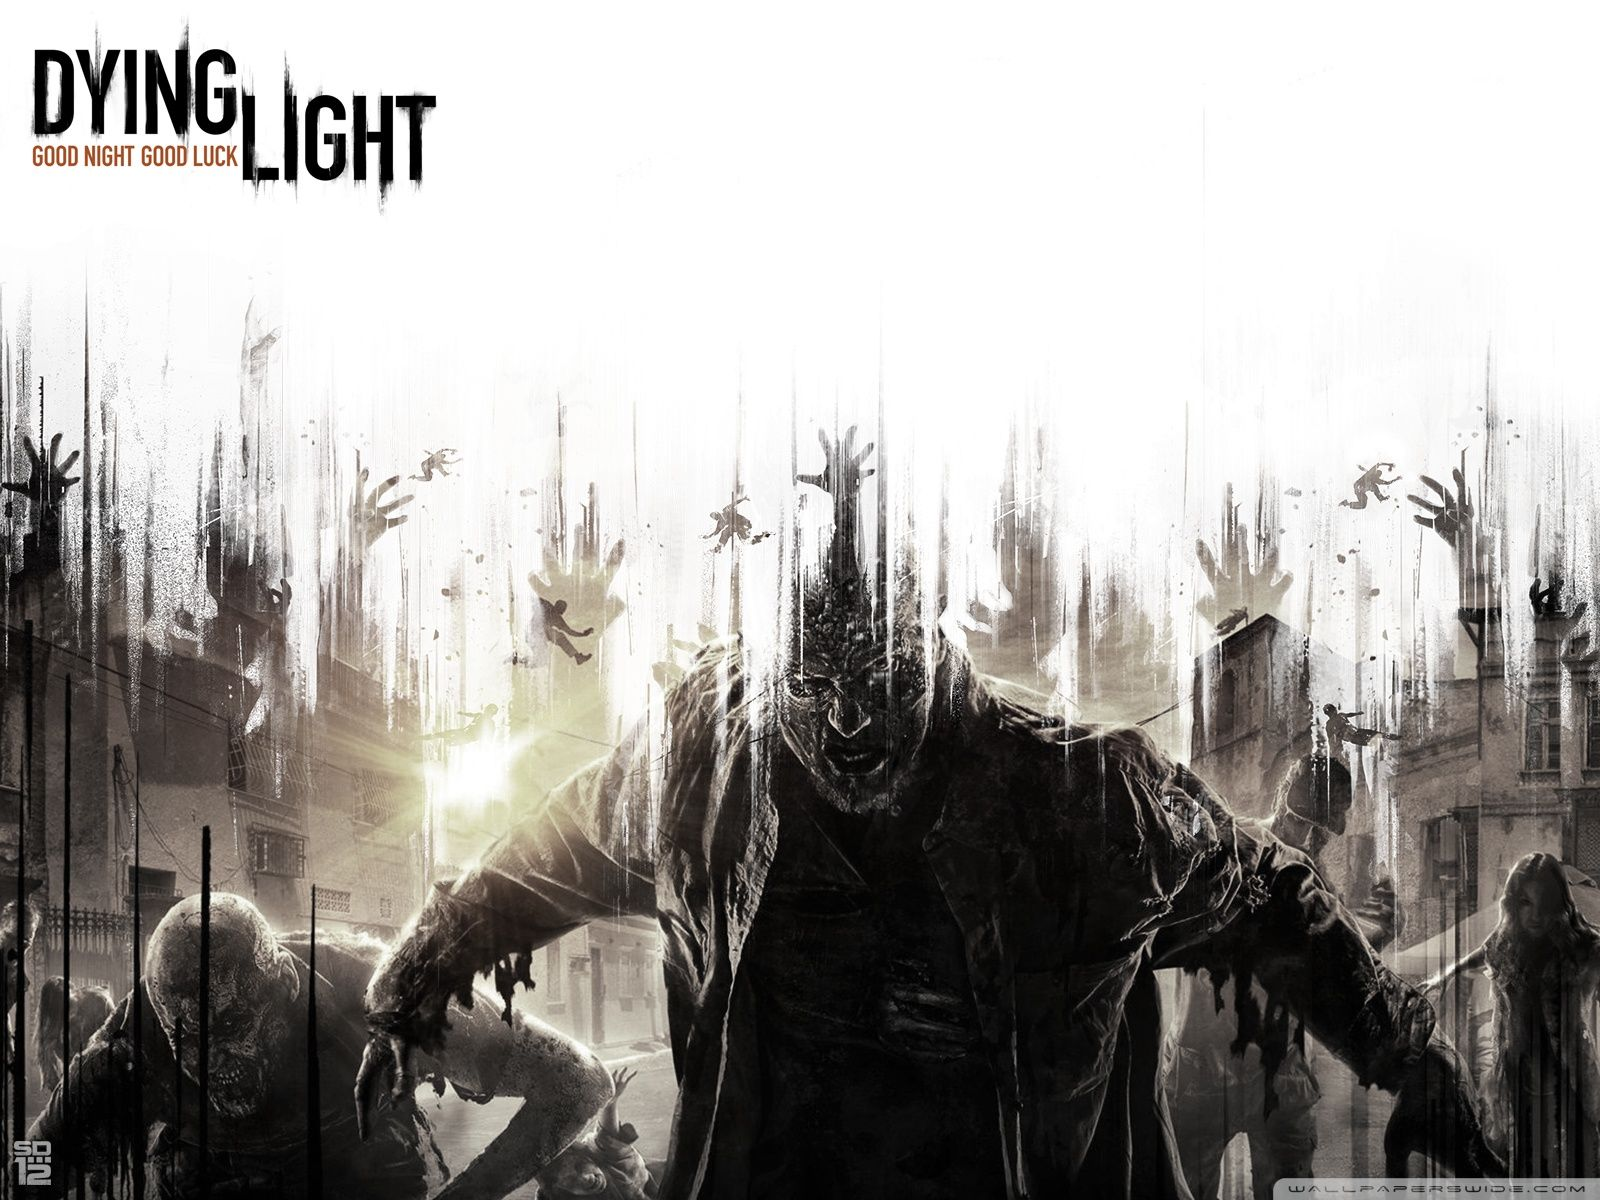 Dying Light 4k Wallpapers Top Free Dying Light 4k Backgrounds